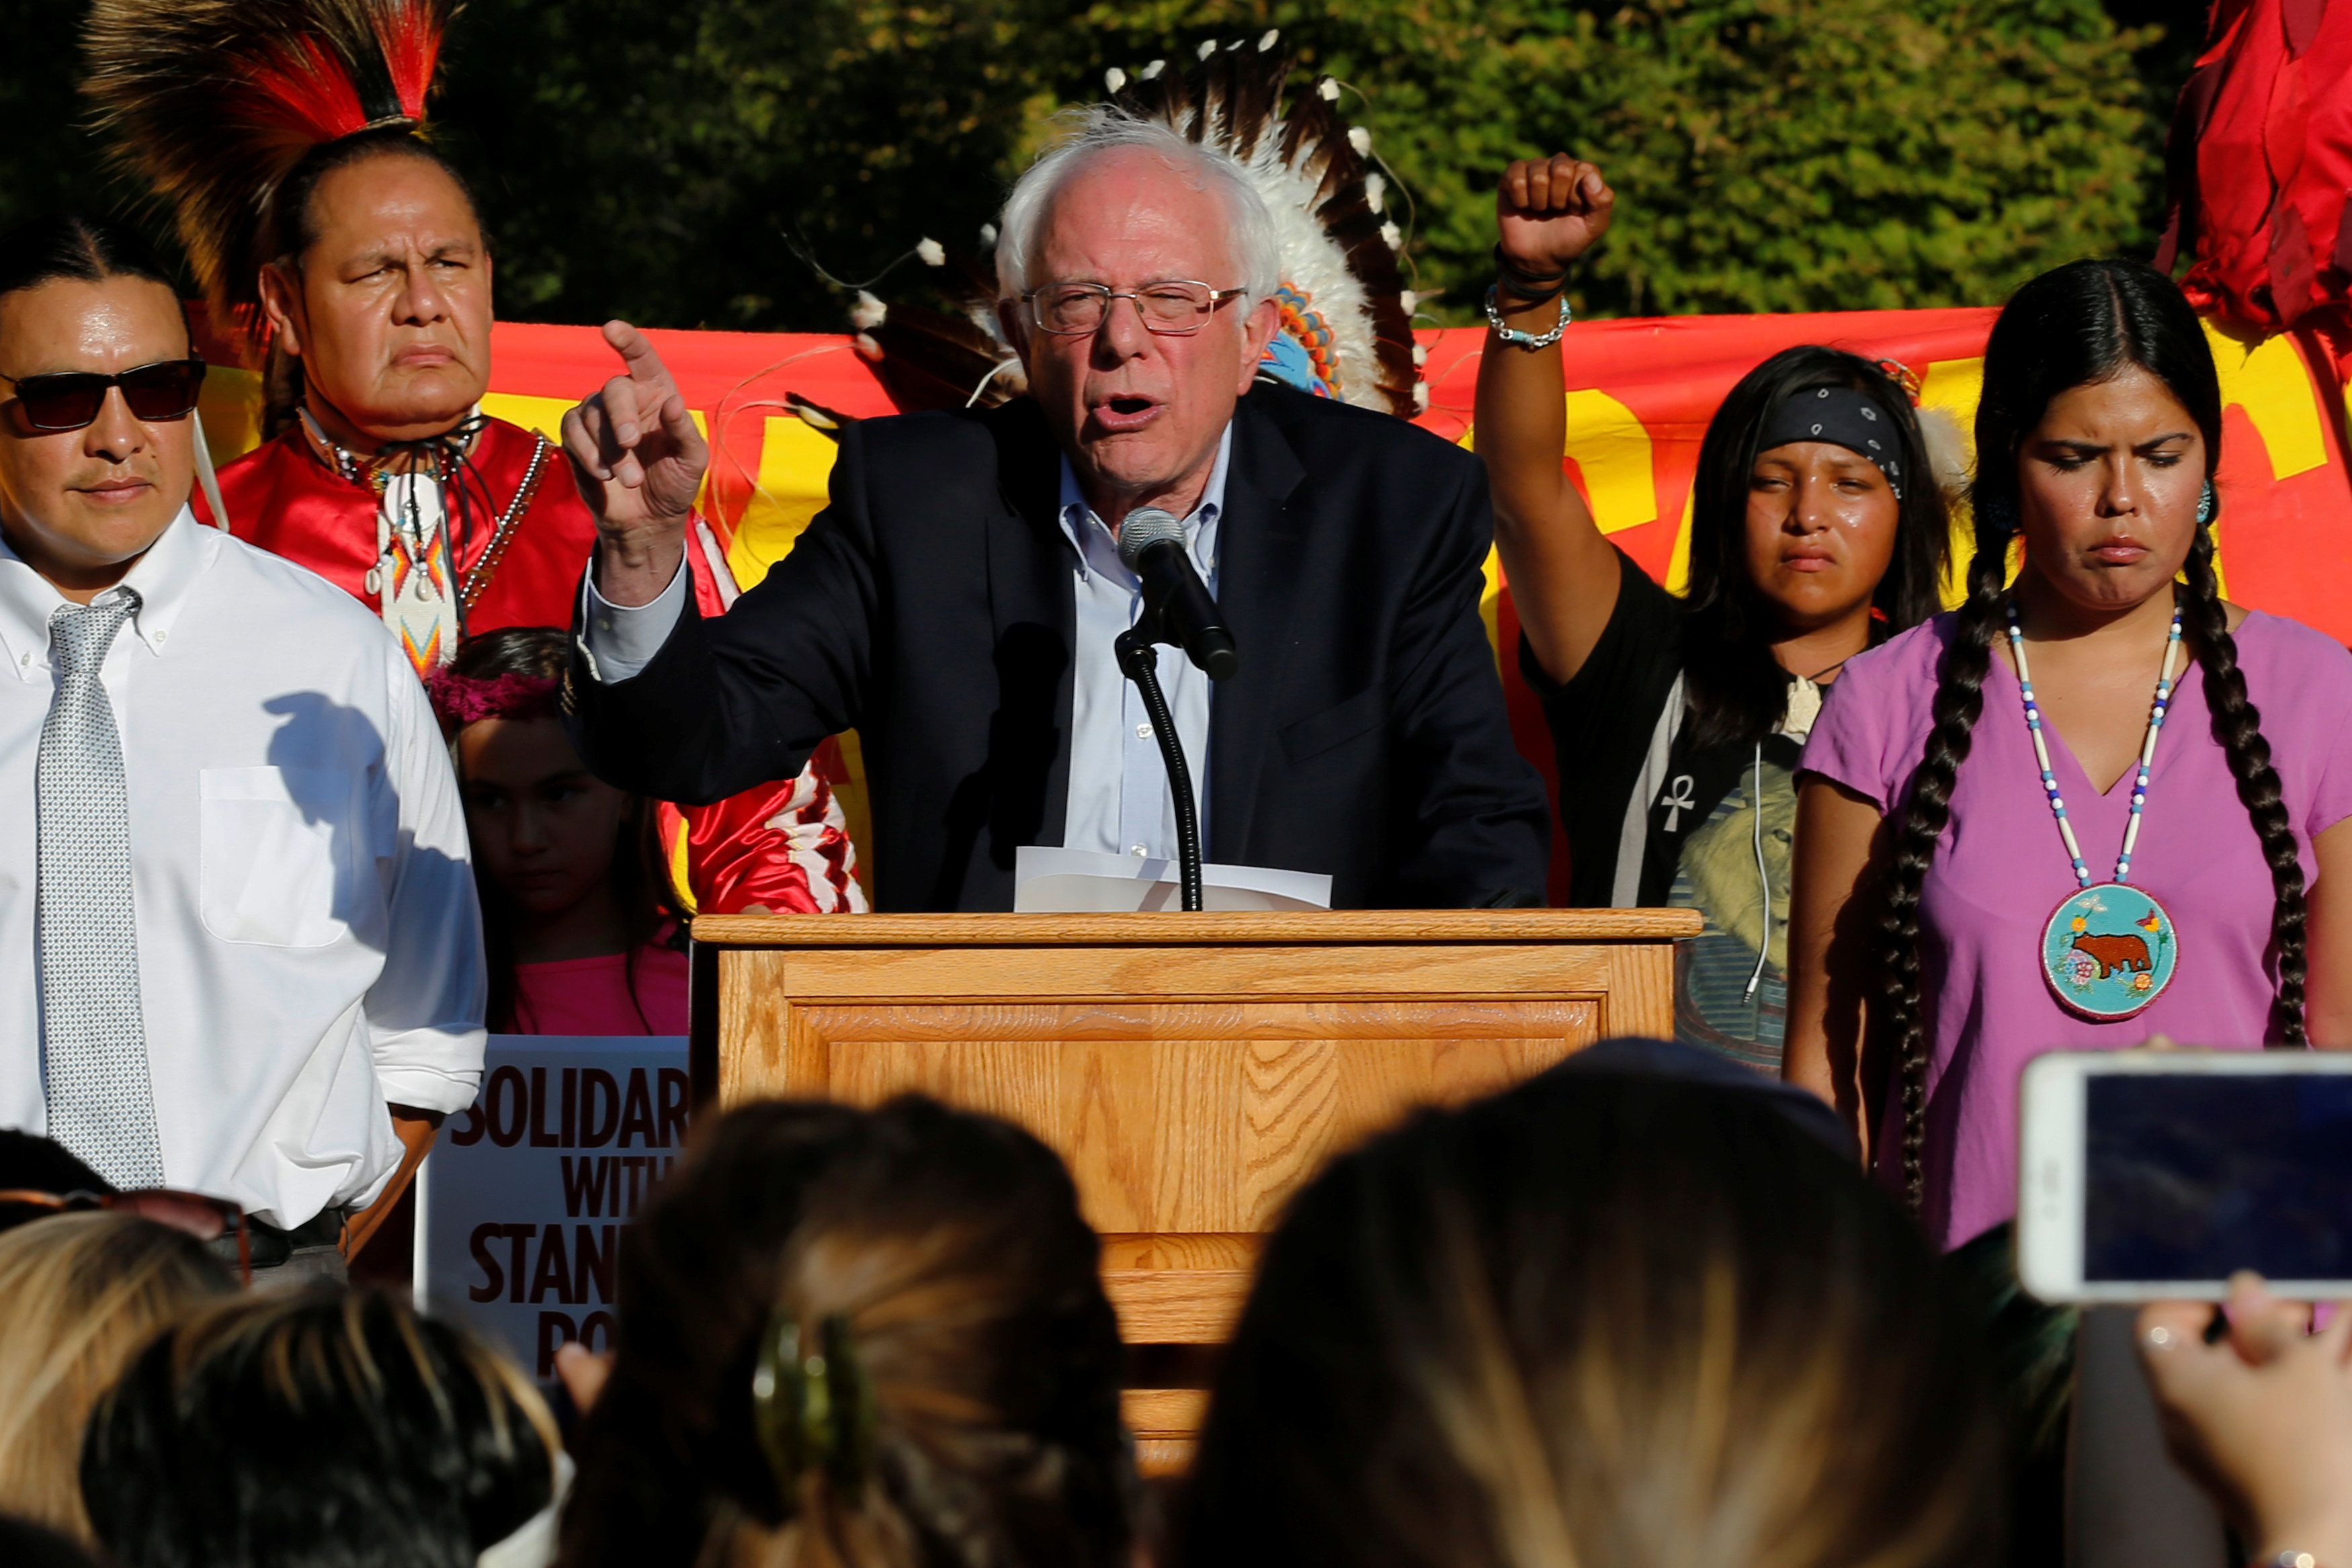 Sen. Bernie Sanders (I-Vt.) speaks at a rally to stop the Dakota Access Pipeline on Sep. 13, 2016.